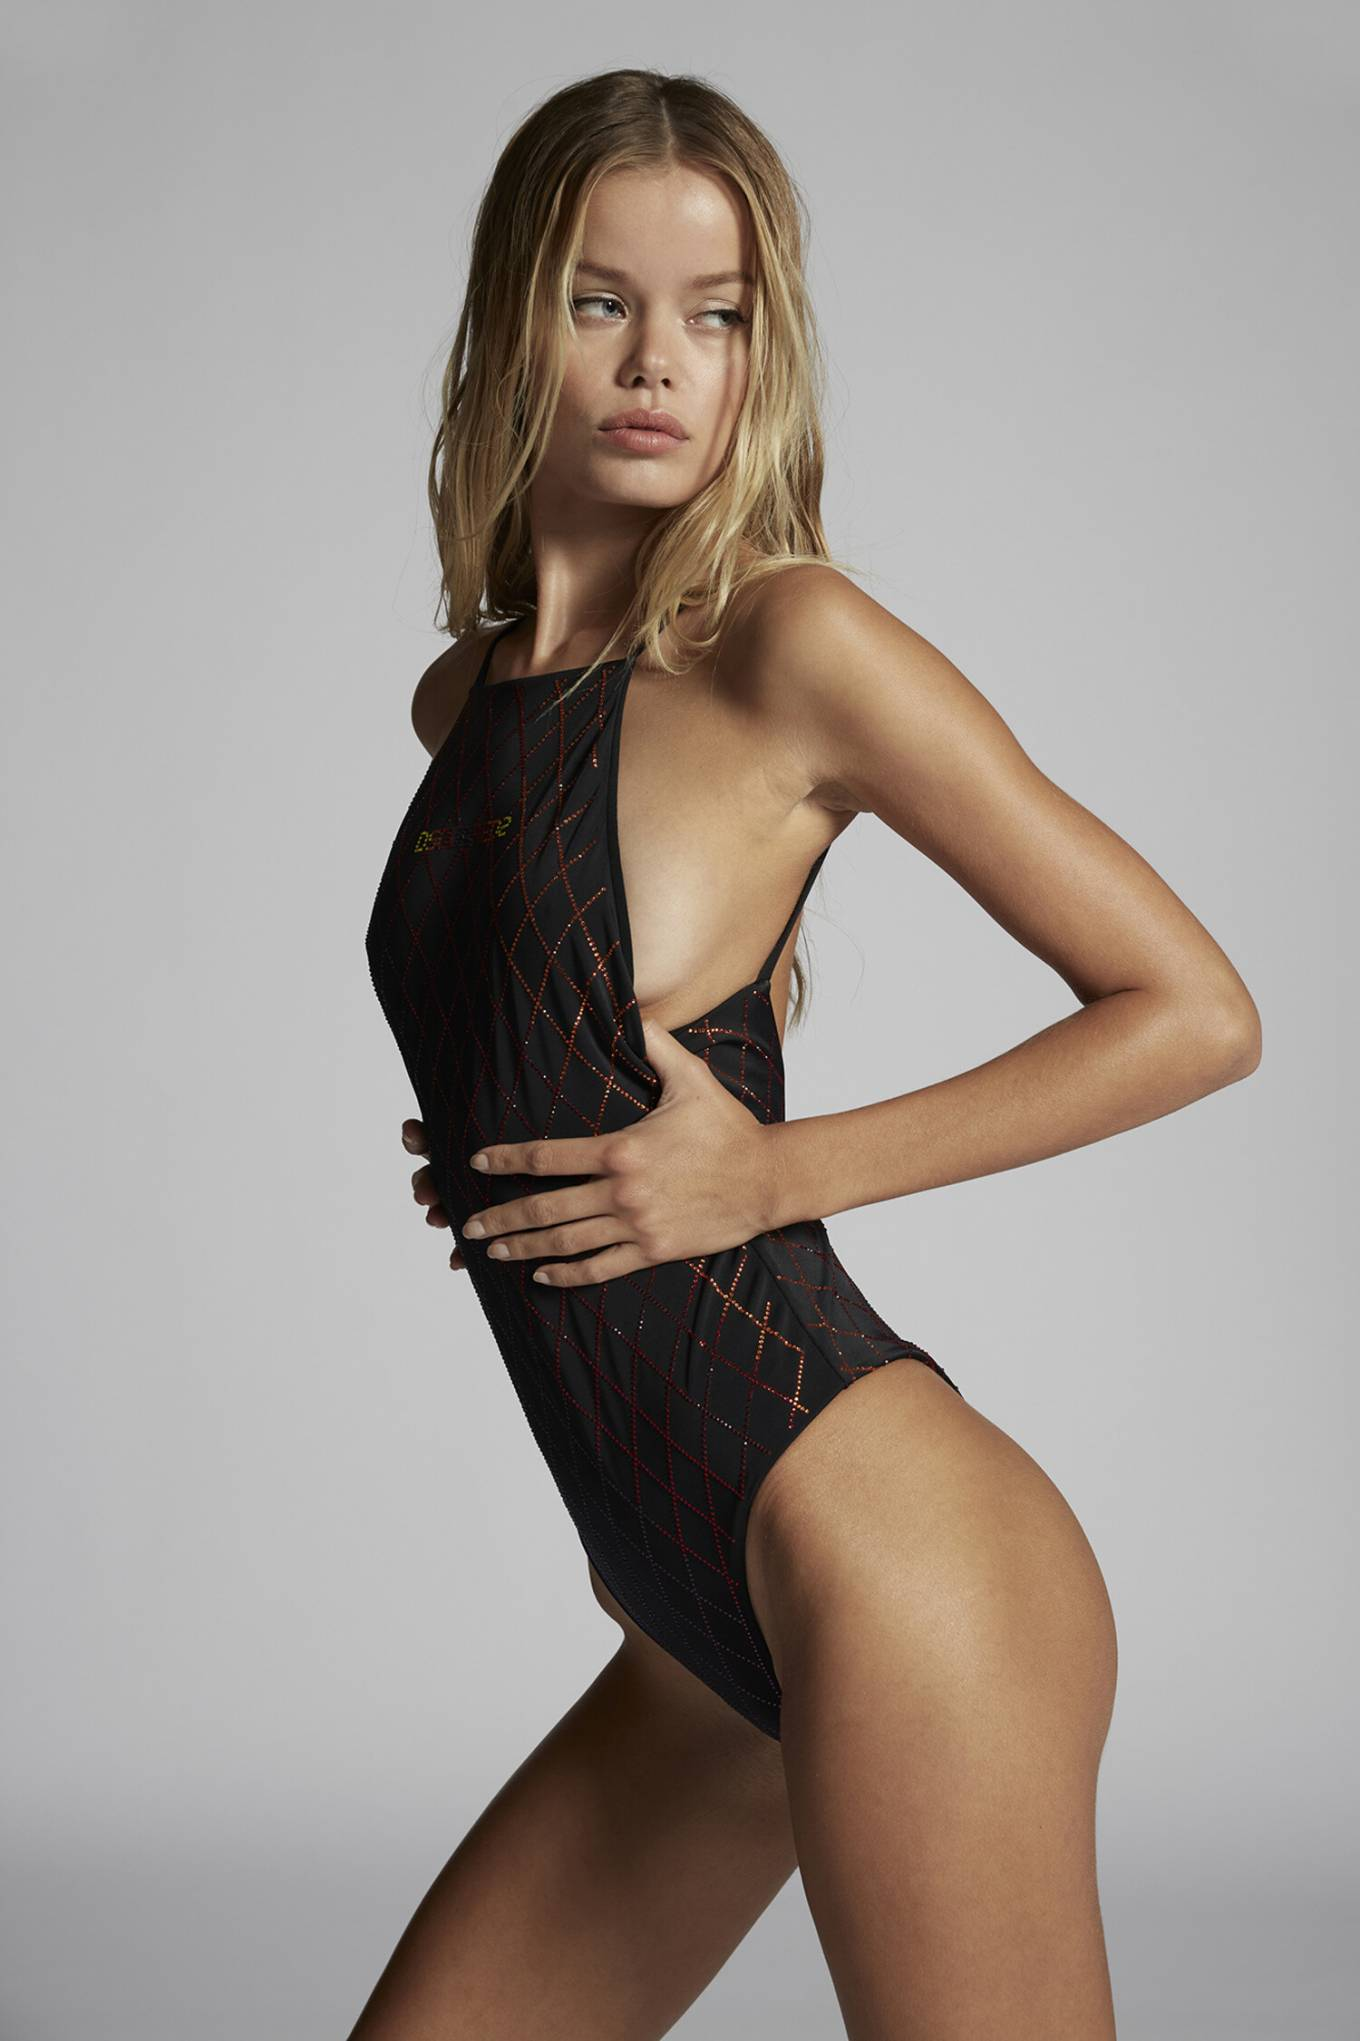 Frida Aasen, Dsquared2  bodysuit, black  bodysuit, black sandals, toned legs, sexy, spaghetti straps, skimpy, long legs, fitted, model figure